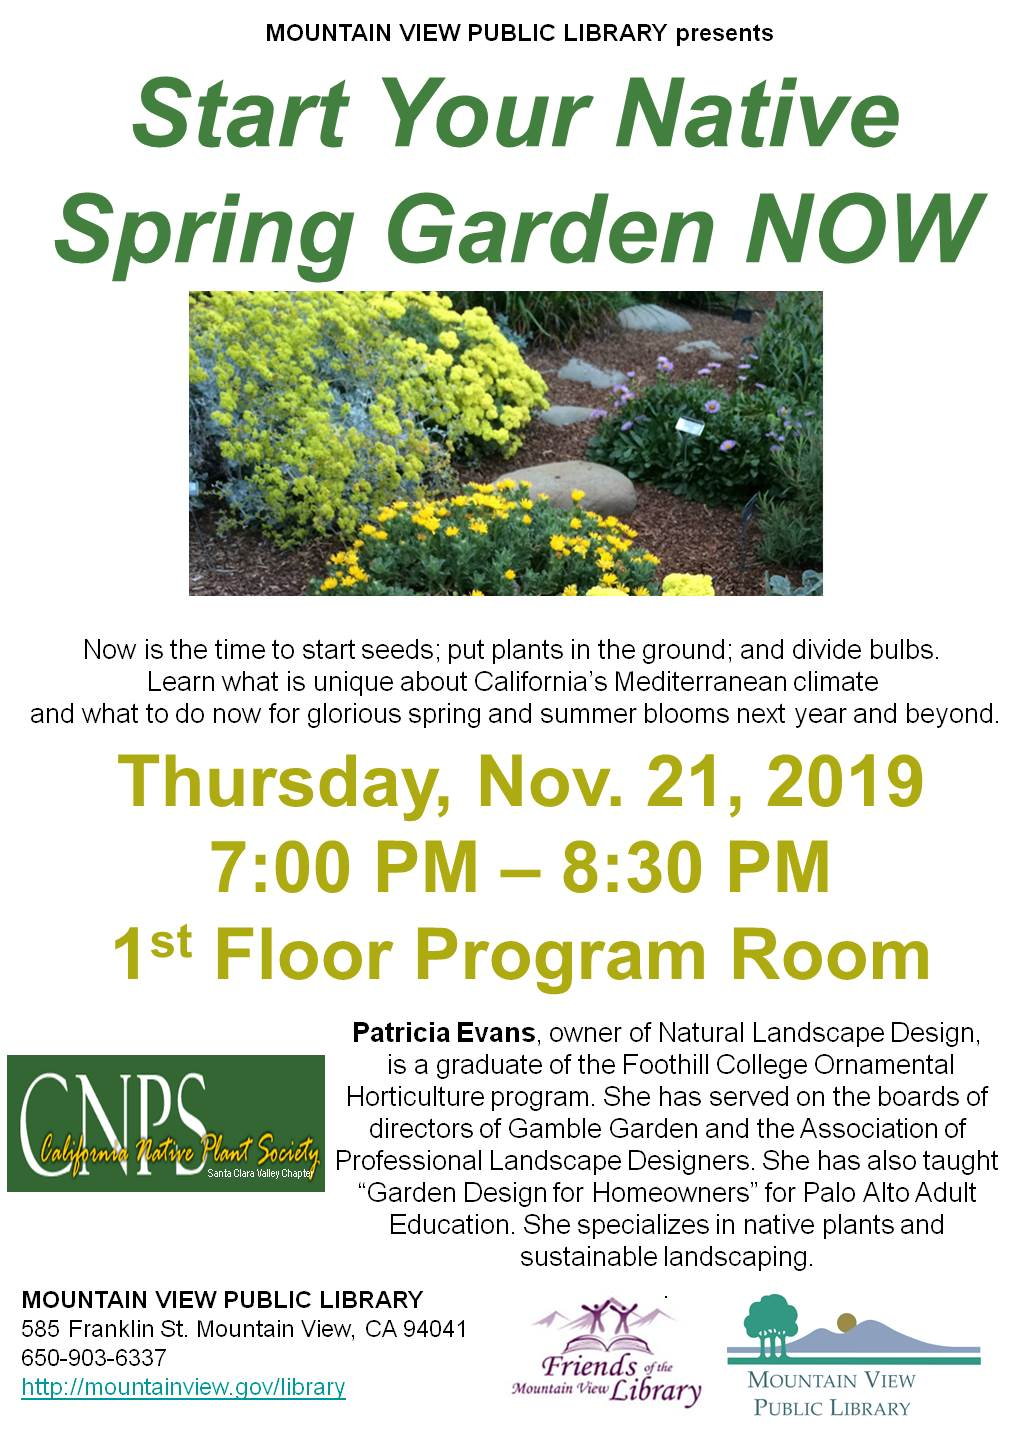 California Native Plant Society: Start Your Native Spring Garden Now